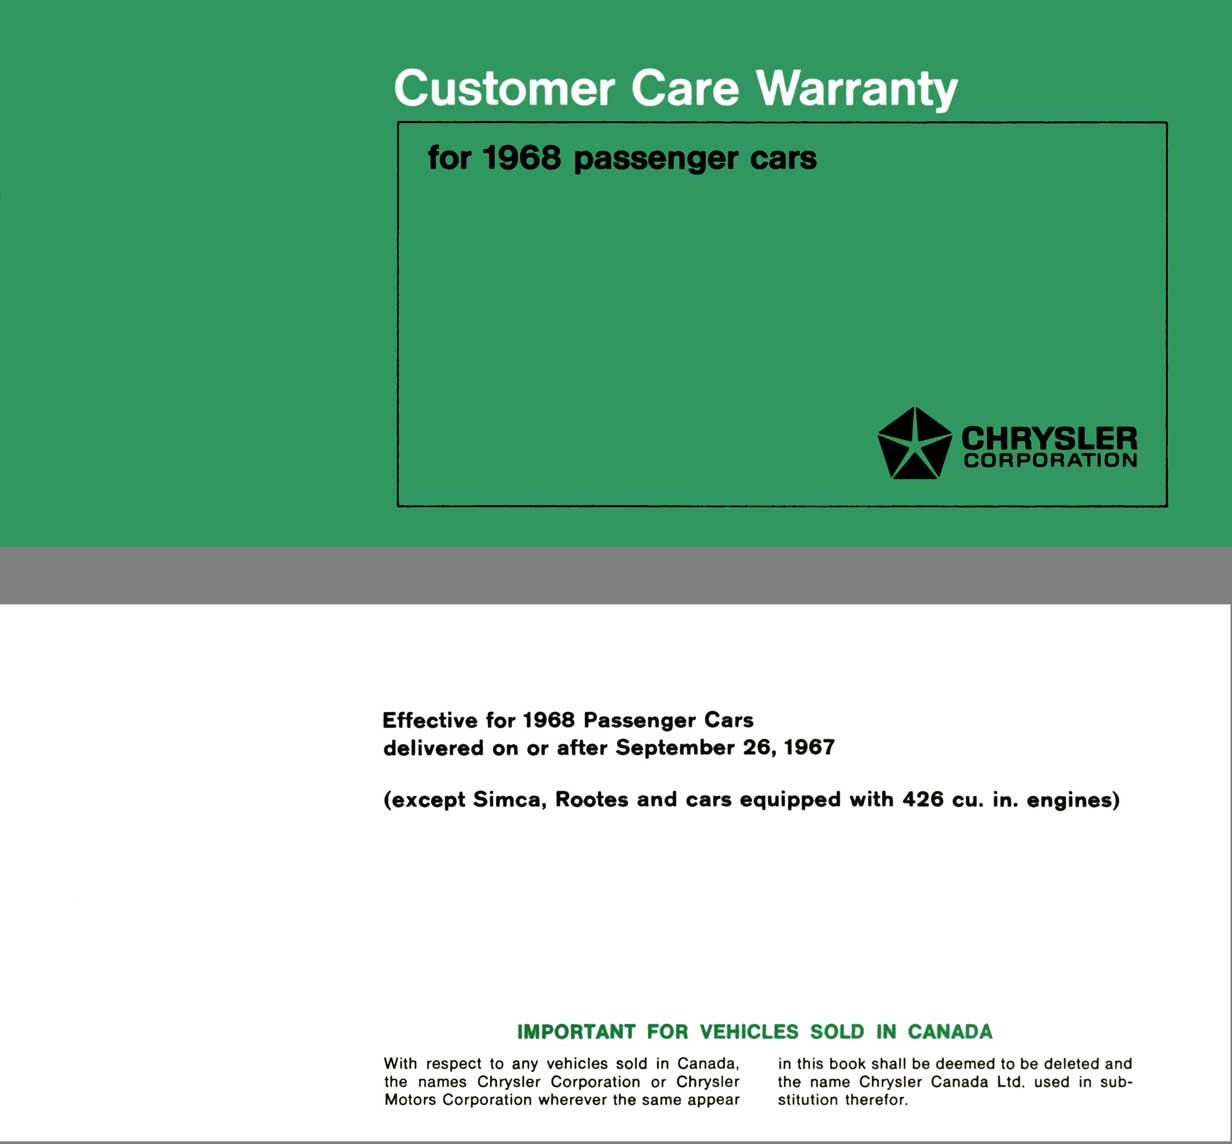 Chrysler 1968 - Customer Care Warranty for 1968 Passenger Cars